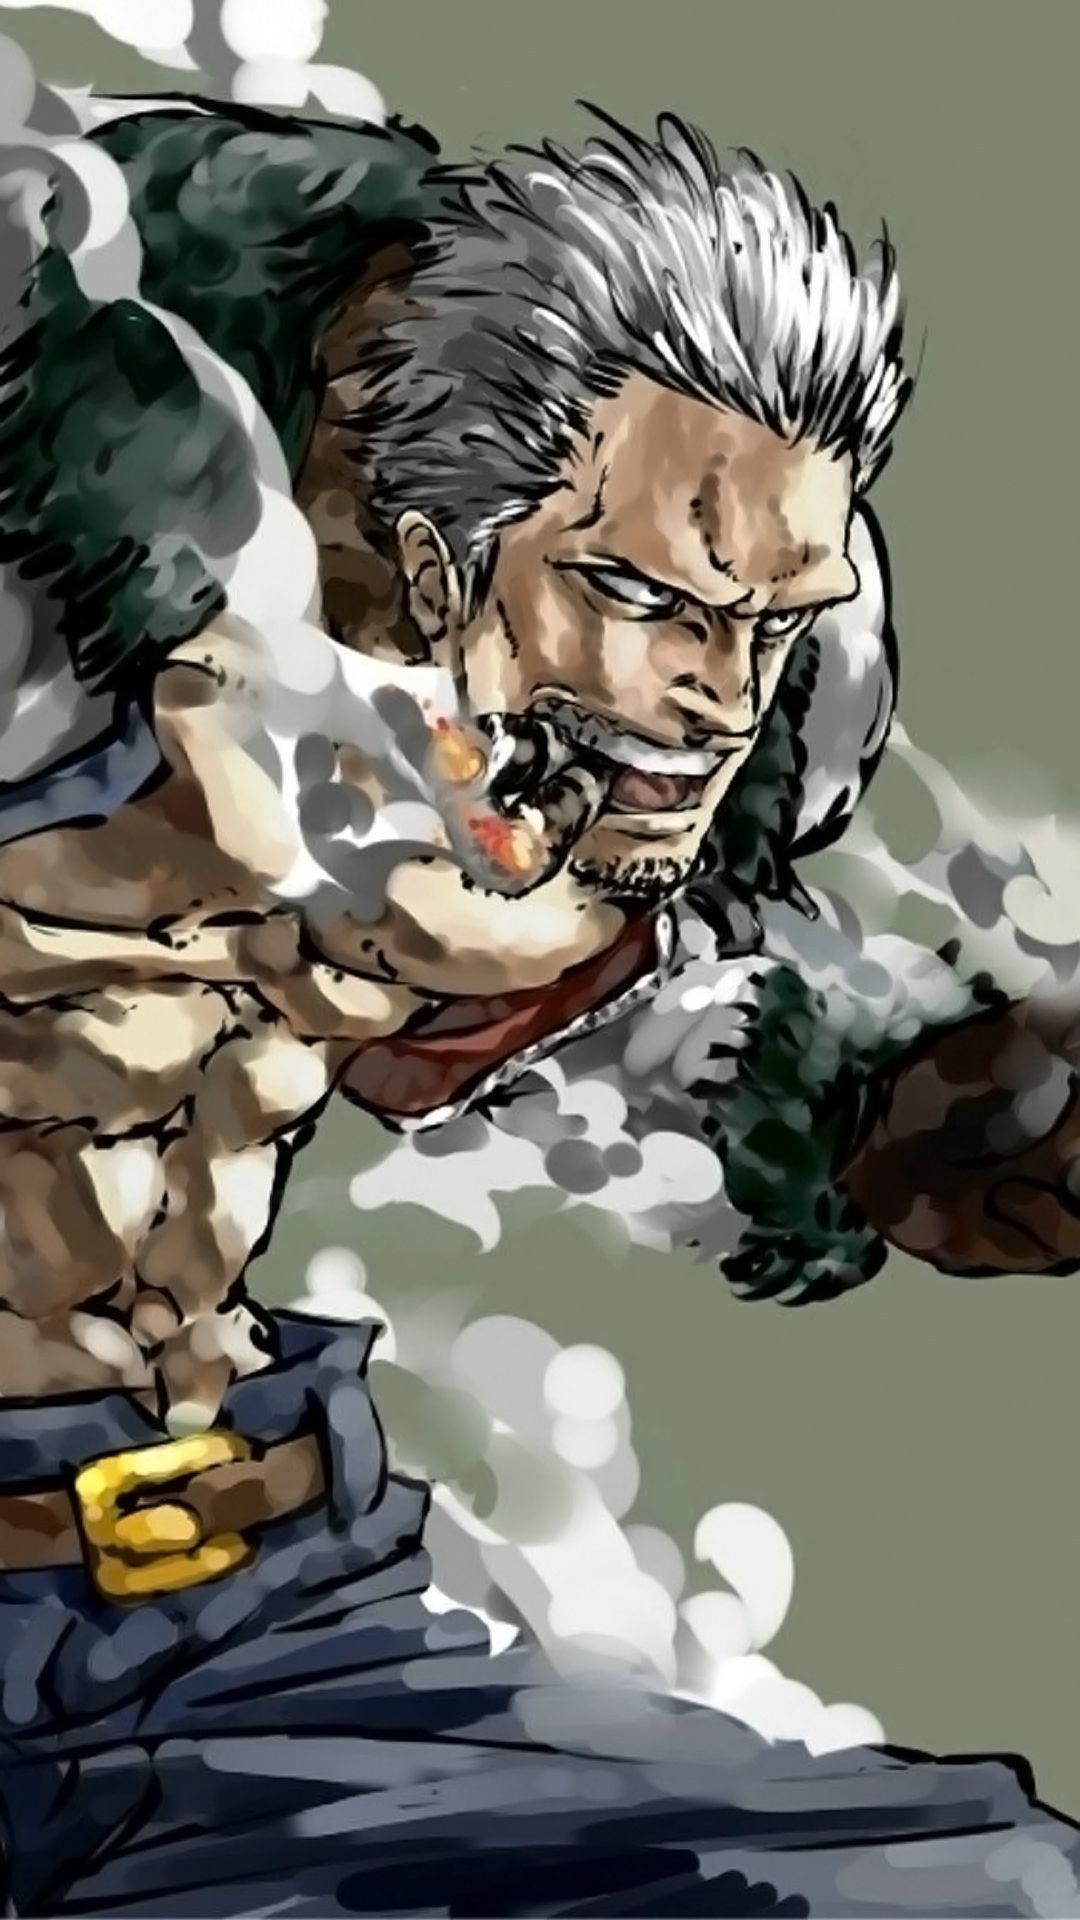 Smoker One Piece Wallpapers - Wallpaper Cave